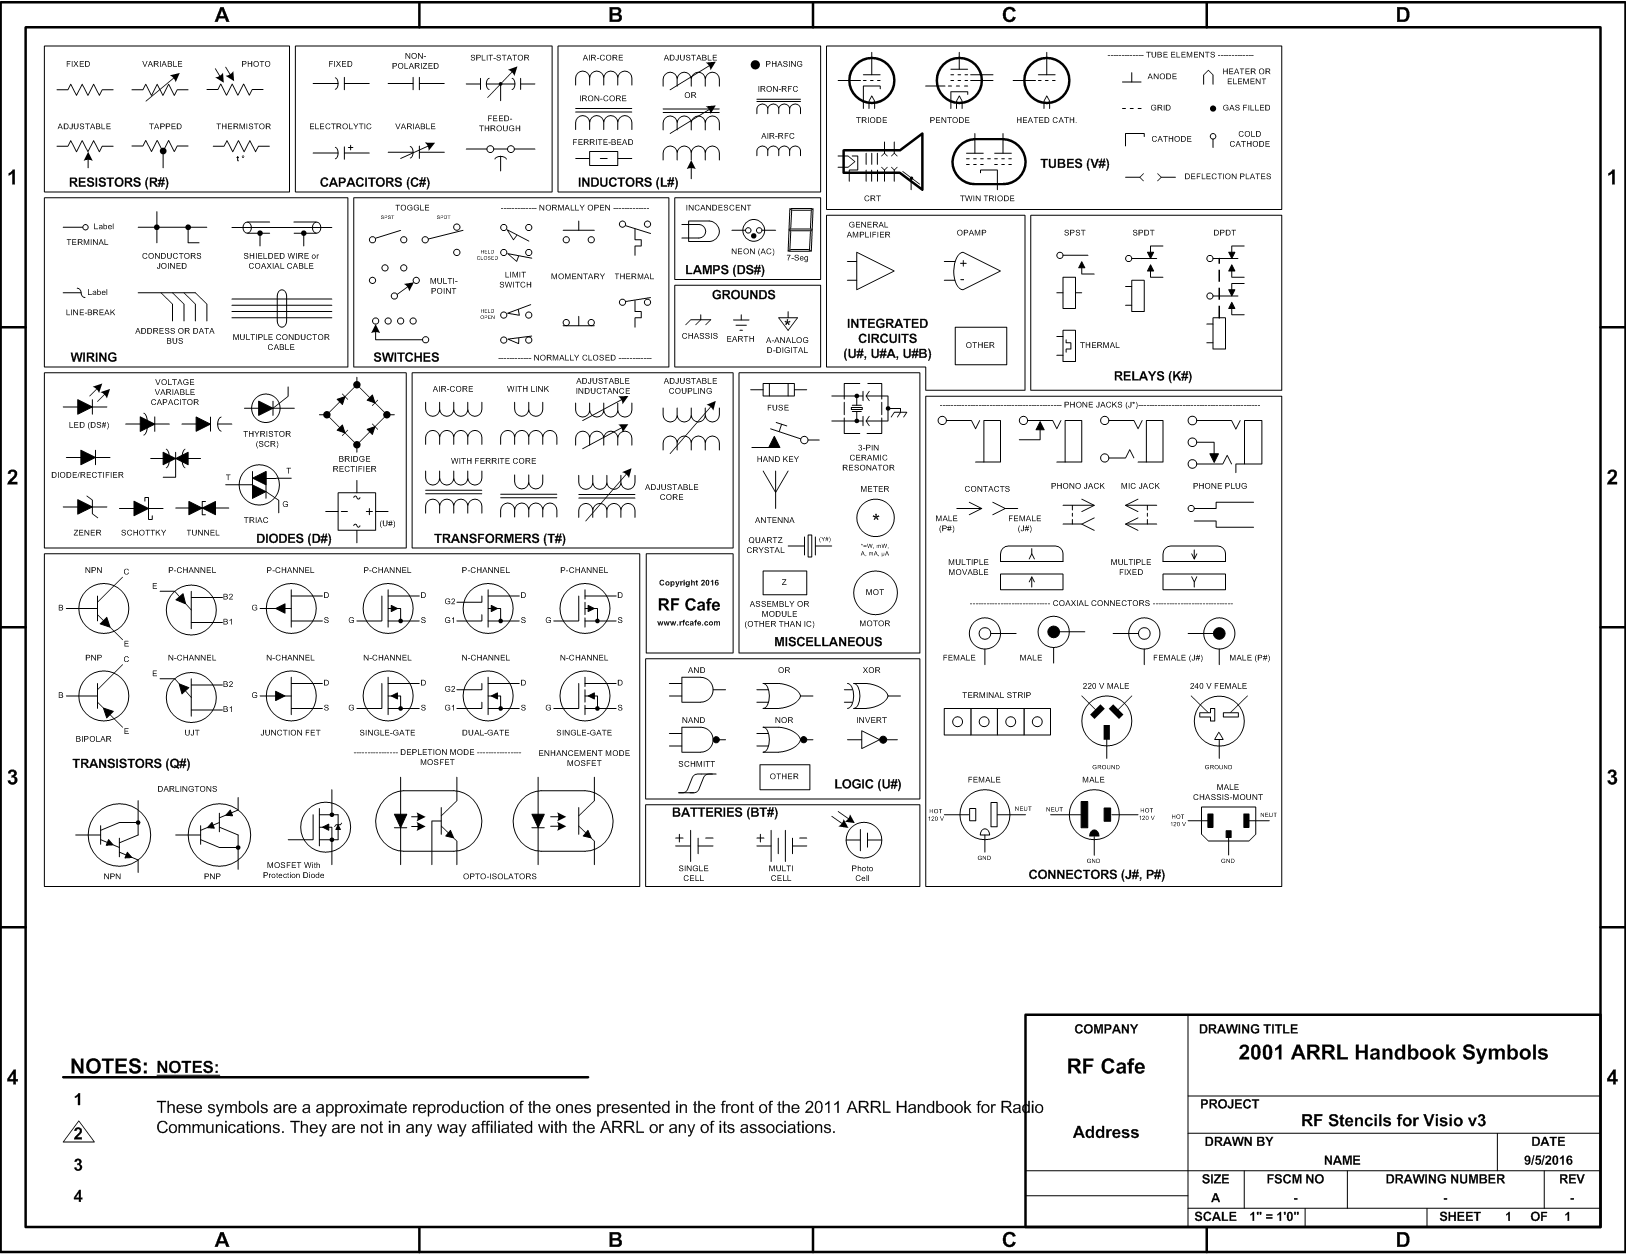 visio circuit schematic symbols from the 2011 arrl handbook rf cafe - Visio Shapes Electrical